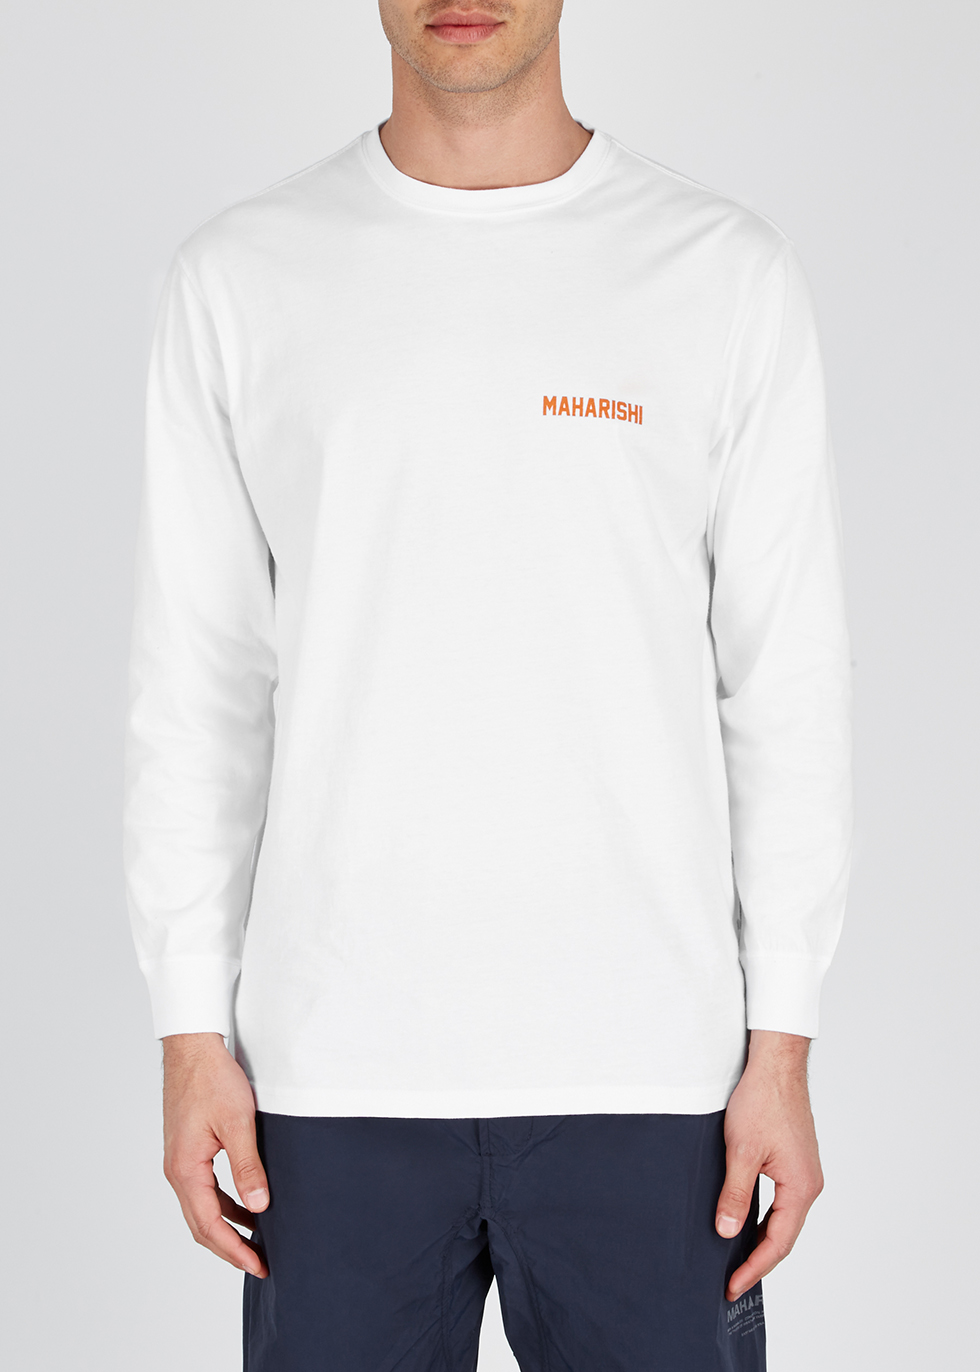 Wise Tygers white organic cotton top - maharishi